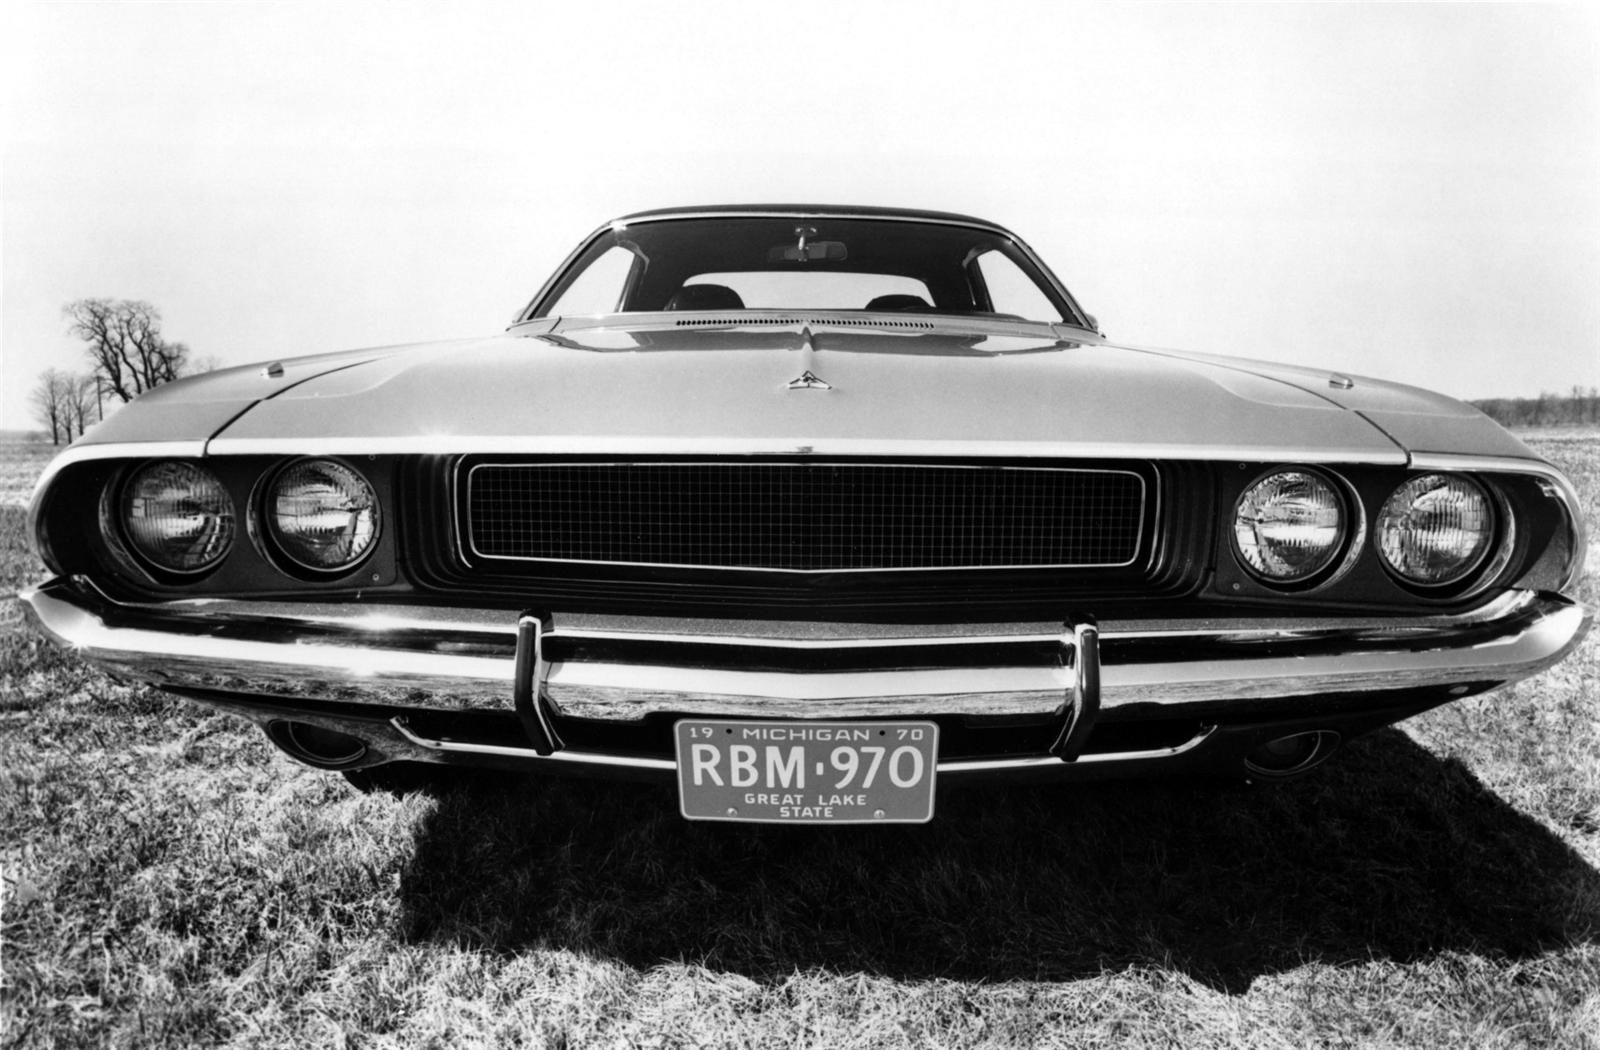 1970 dodge challenger images photo 1970 dodge challenger. Black Bedroom Furniture Sets. Home Design Ideas